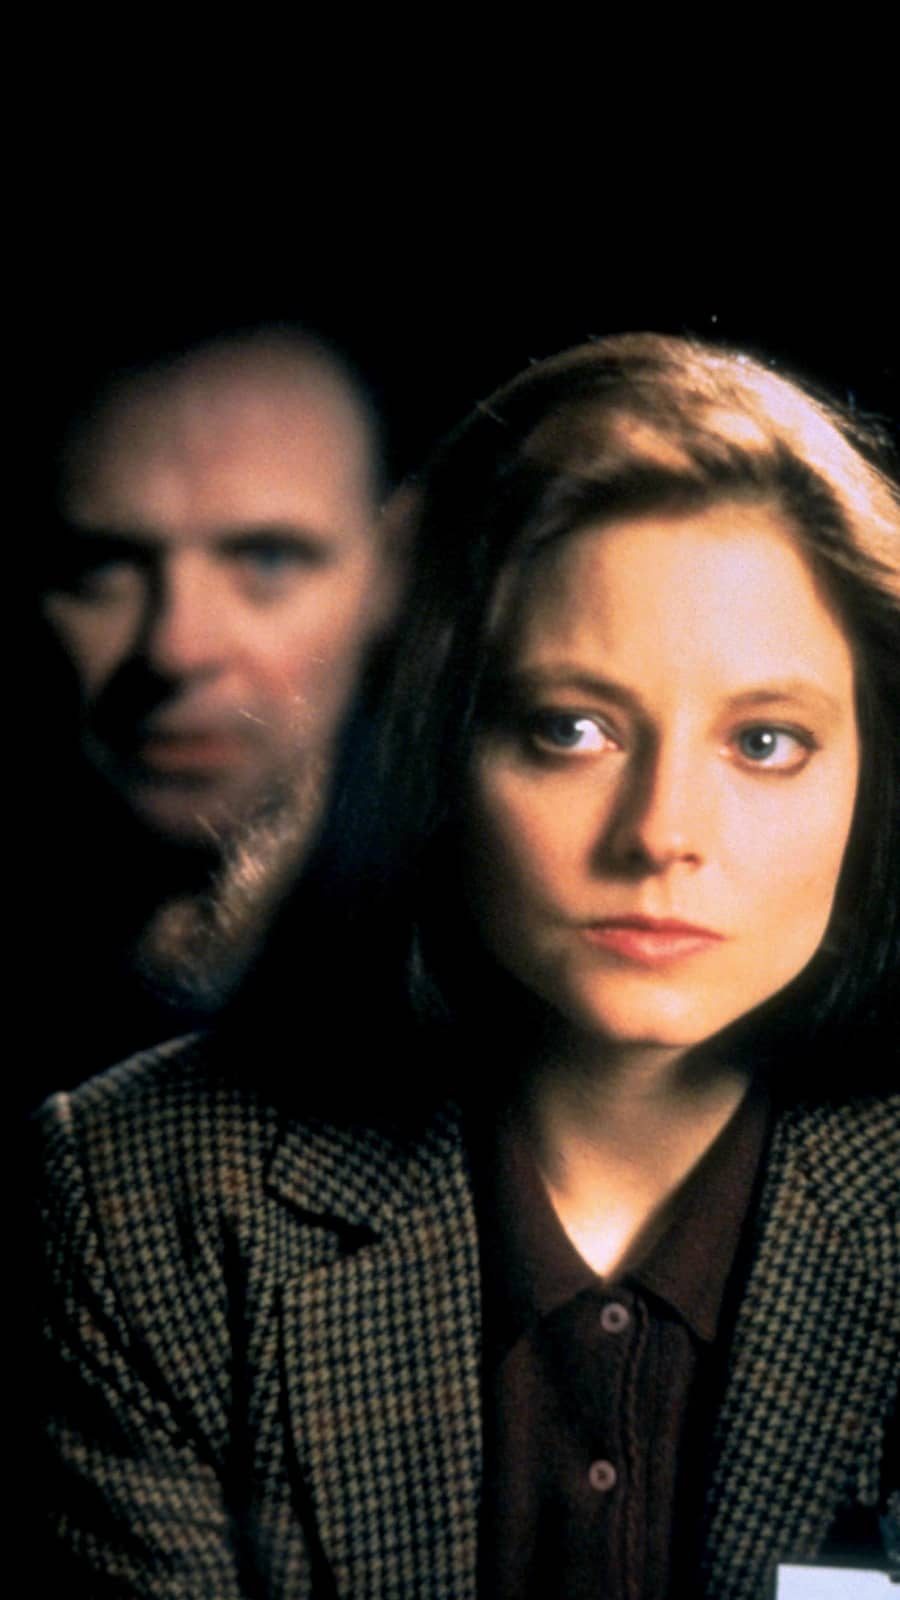 Jodie Foster y Anthony Hopkins en una imagen promocional de 'The Silence of the Lambs'